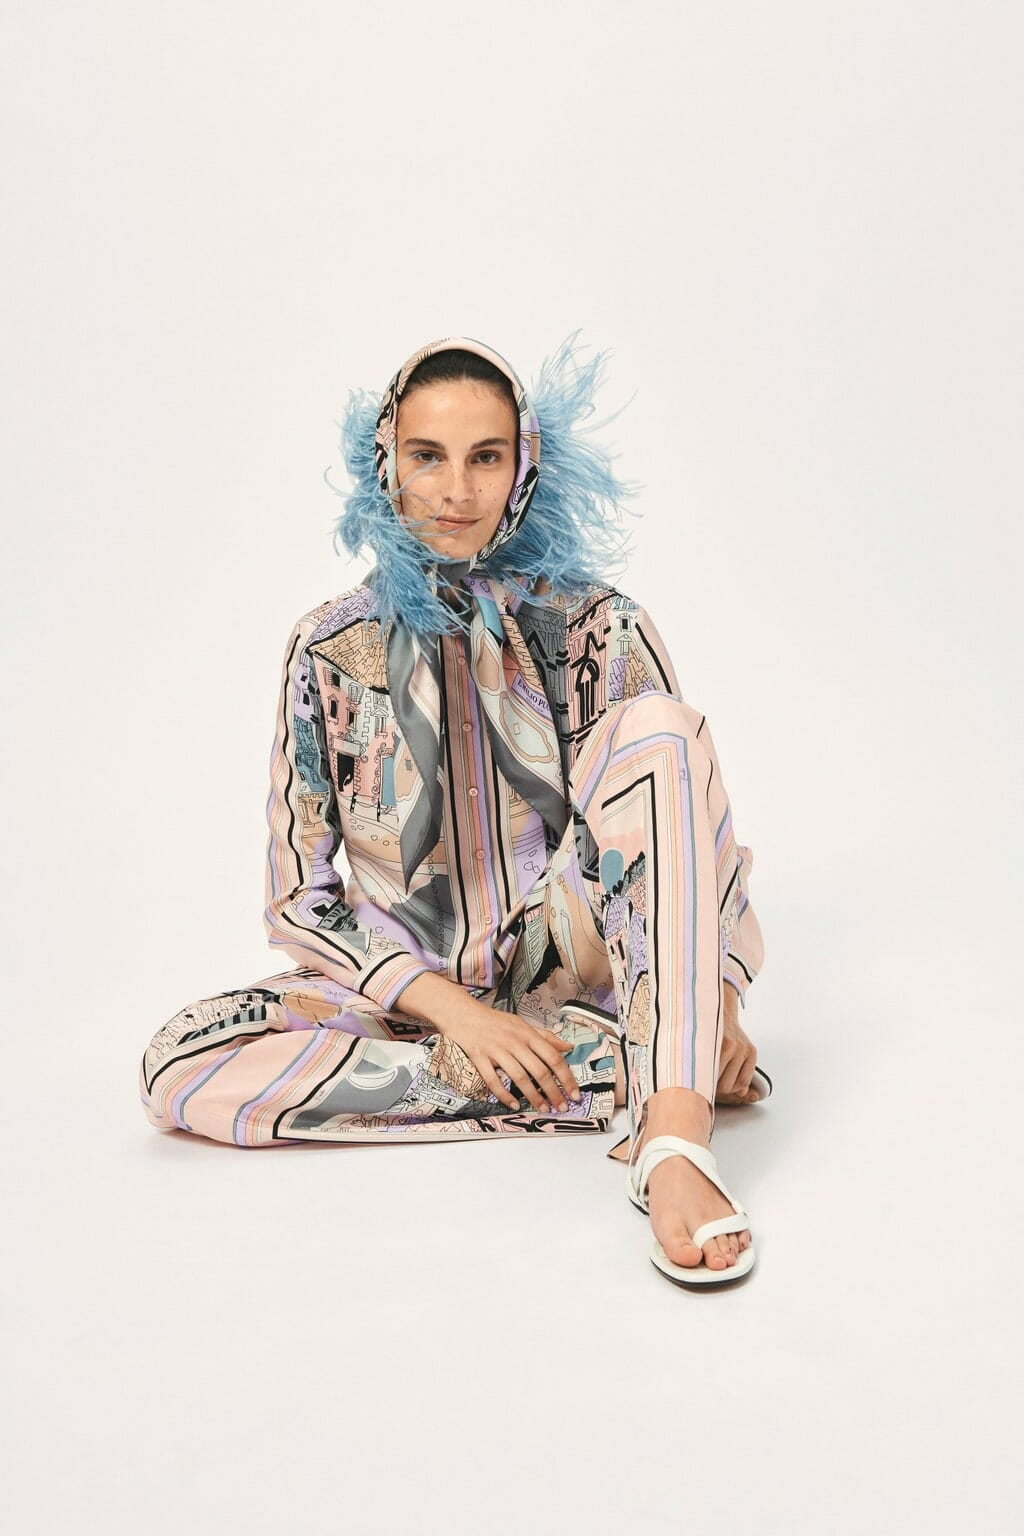 Emilio Pucci Cruise 2021 Resort. RUNWAY MAGAZINE ® Collections. RUNWAY NOW / RUNWAY NEW